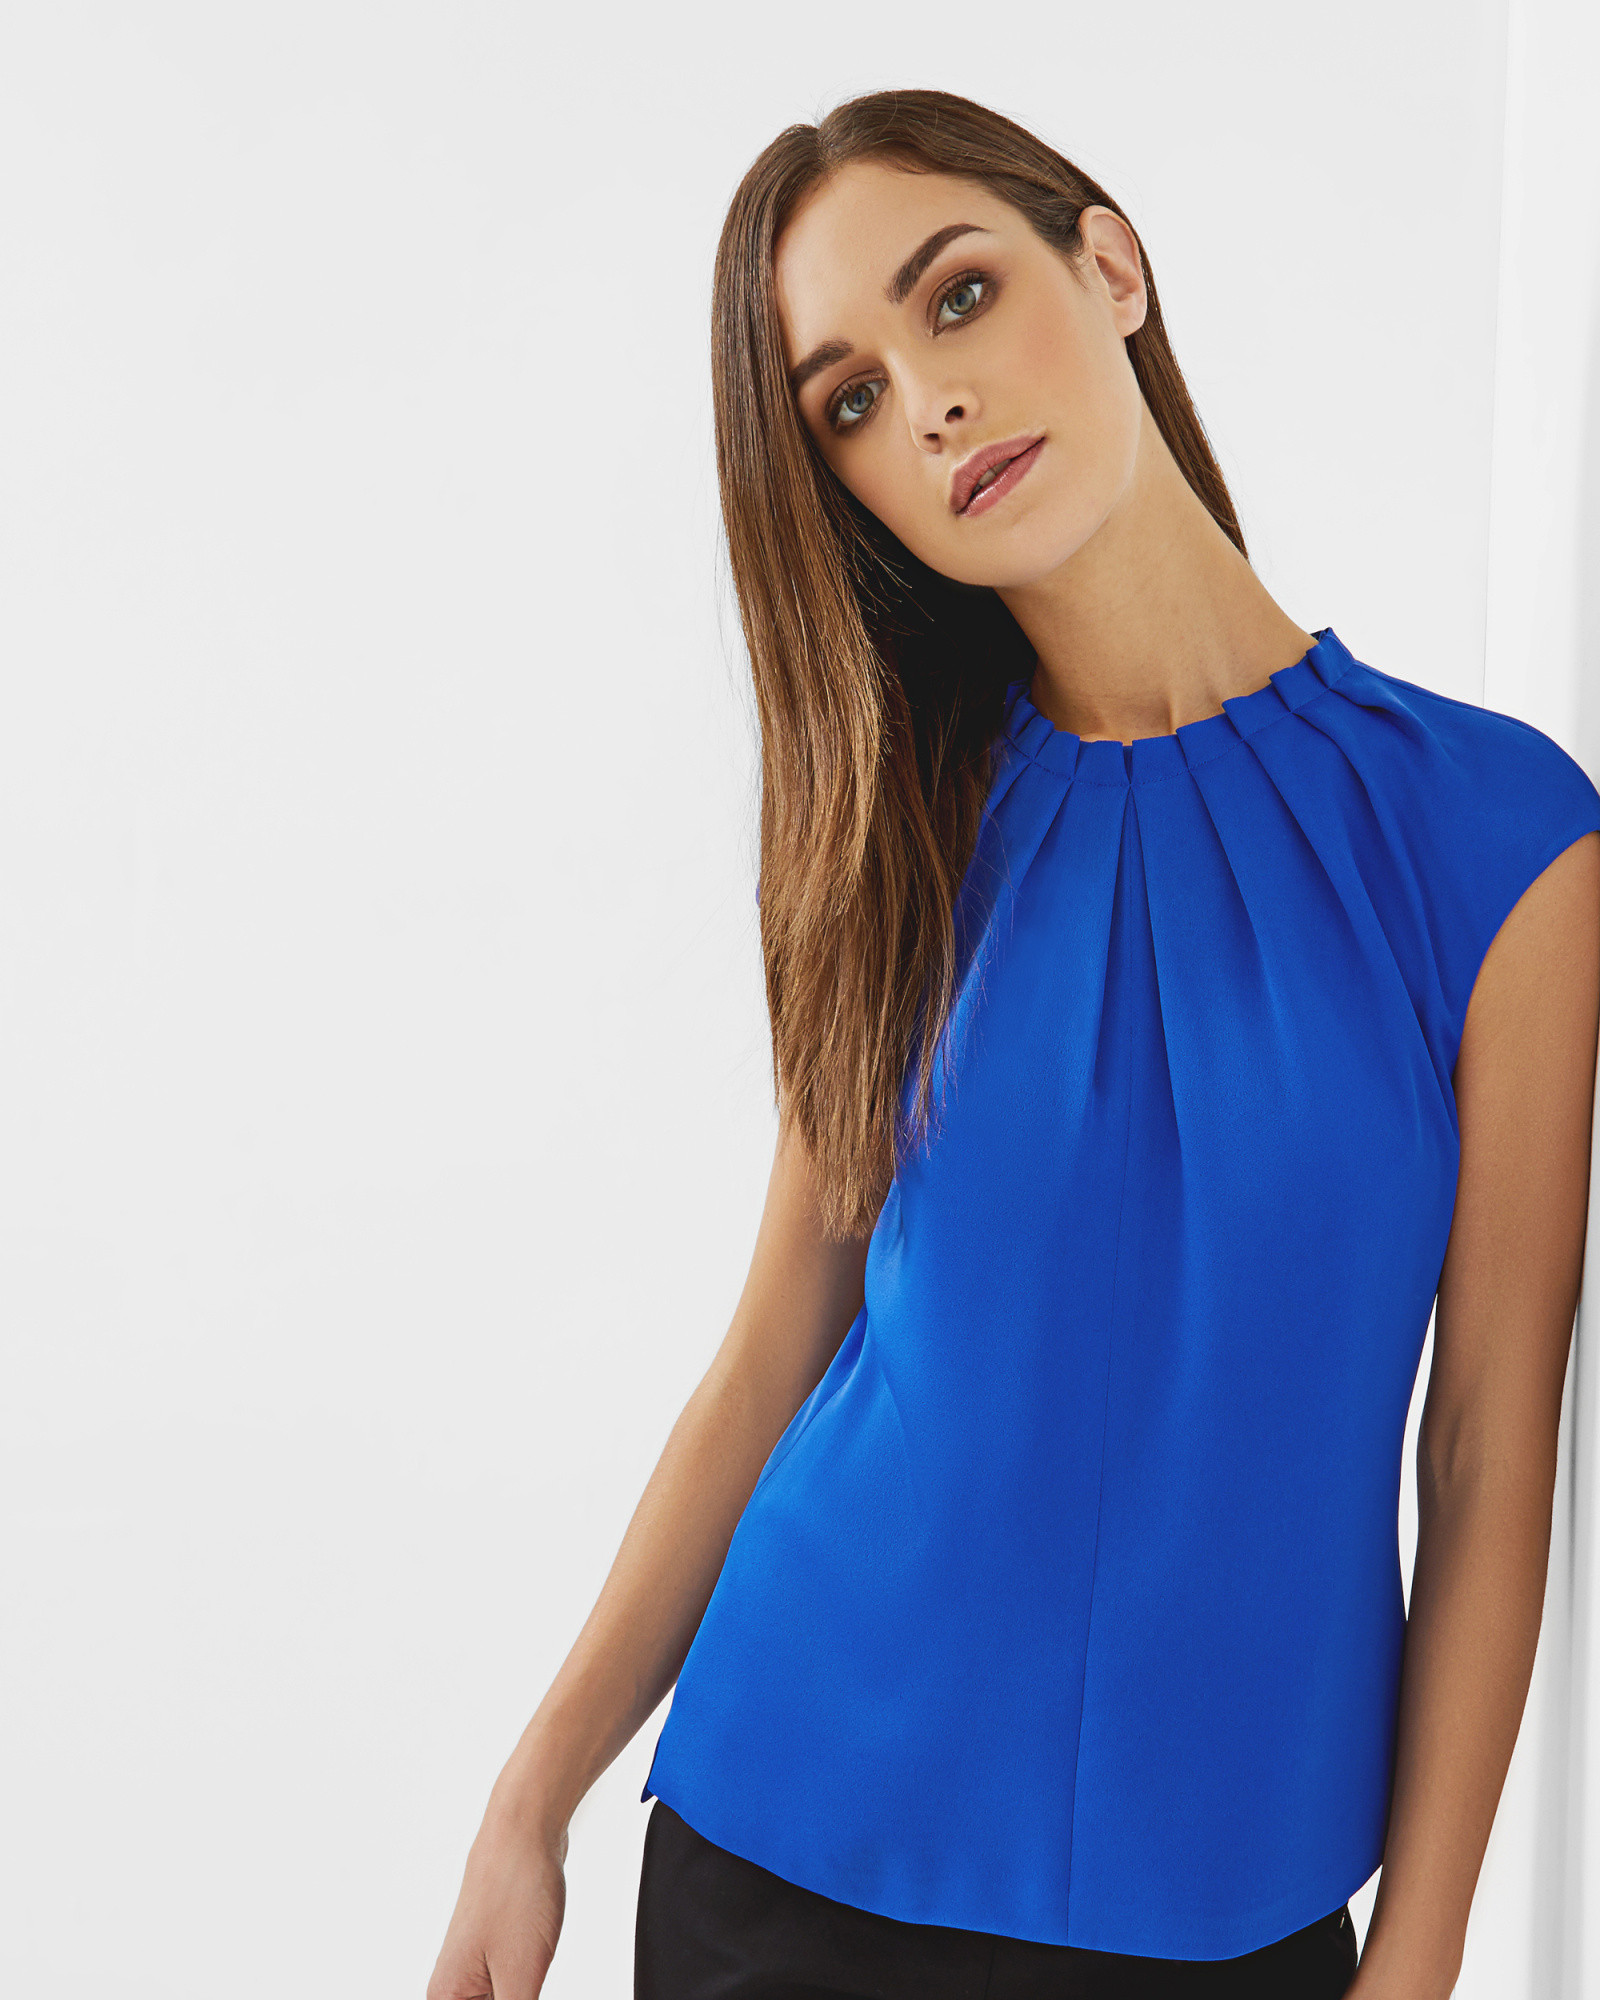 Blue Tops For Women